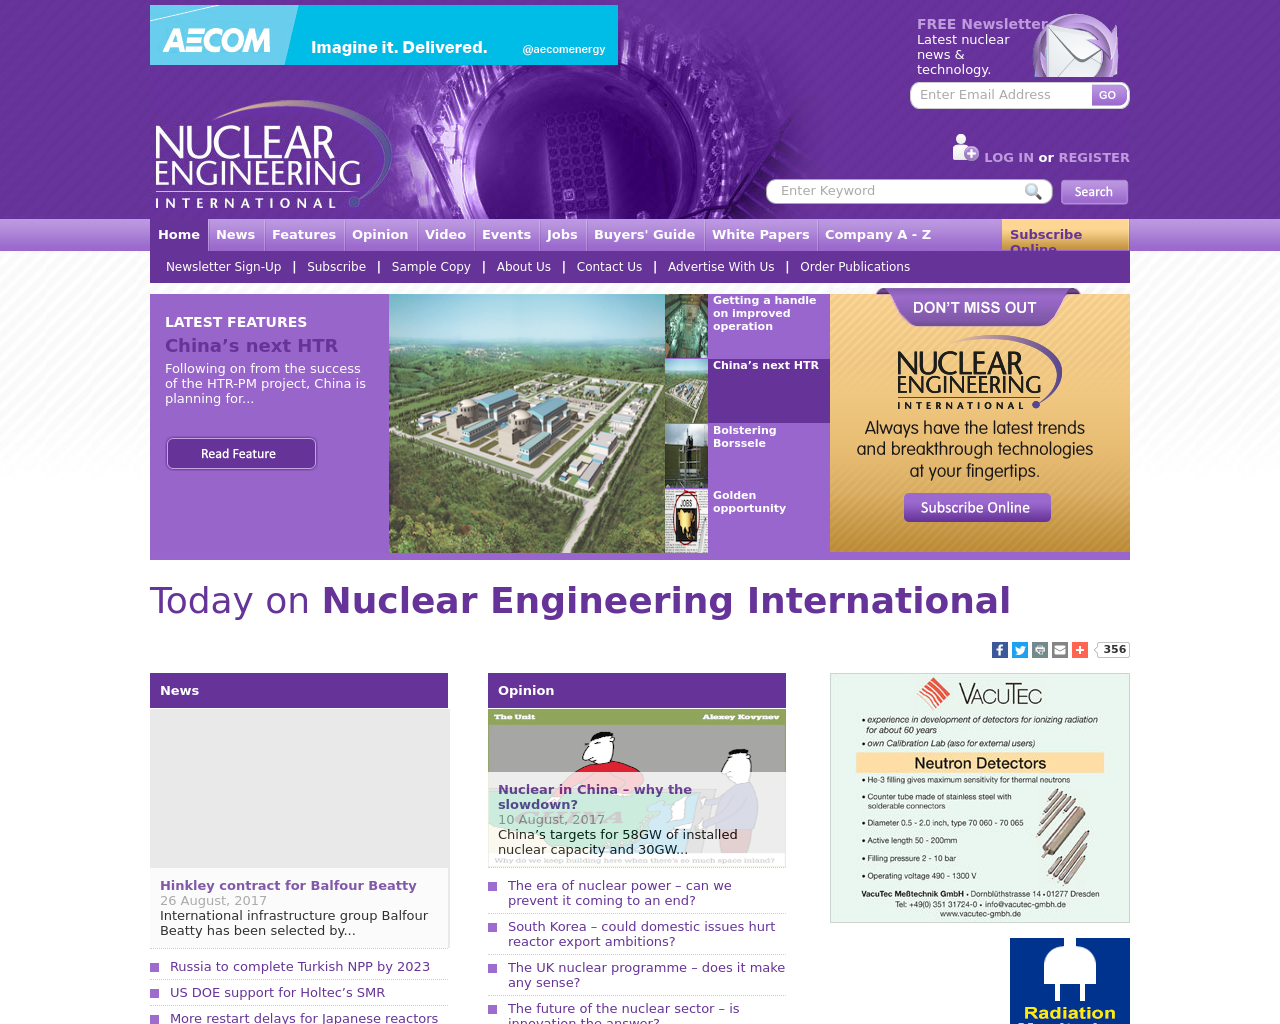 Nuclear-Engineering-International-Advertising-Reviews-Pricing